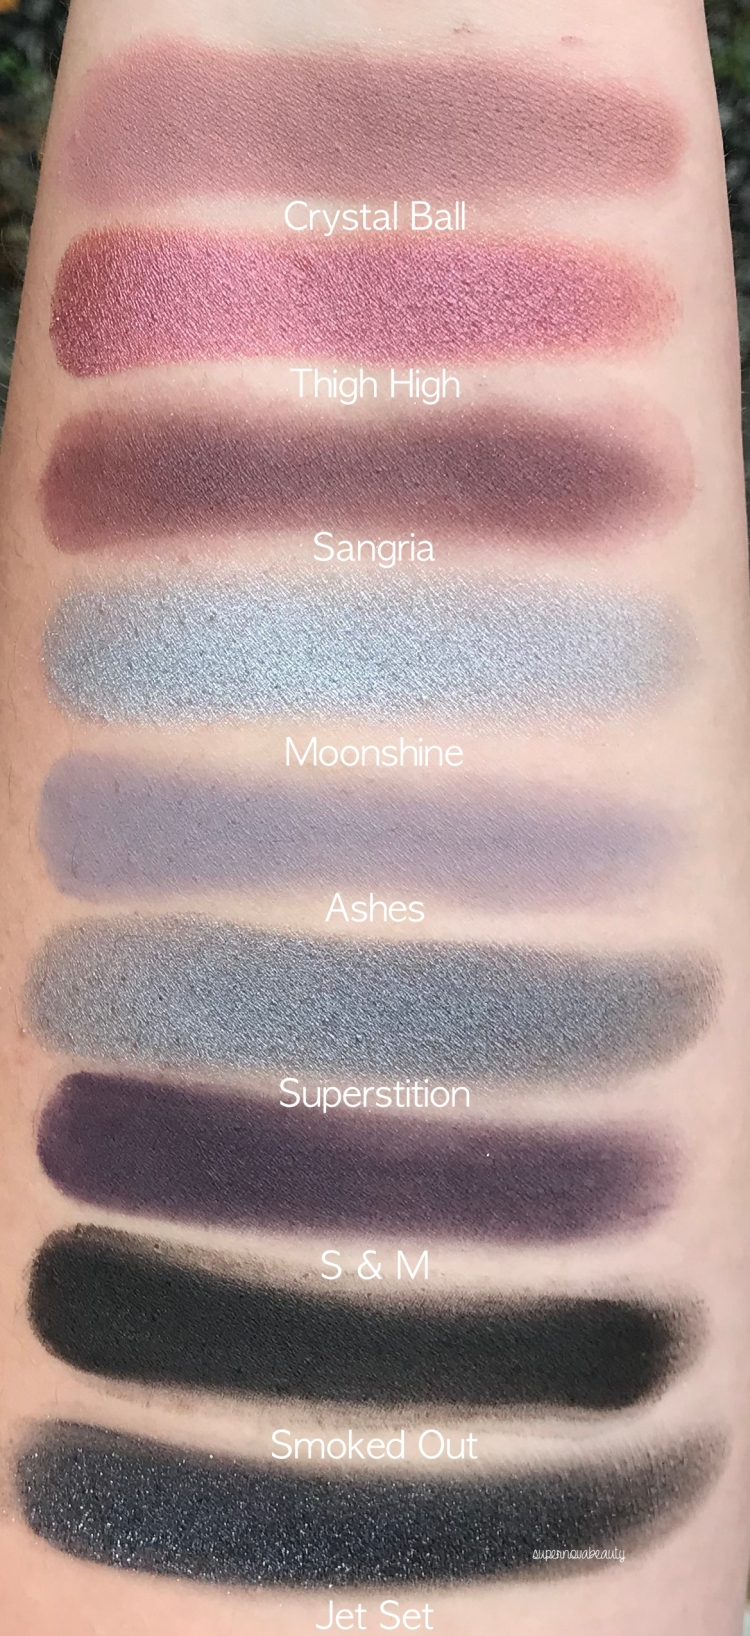 stilazzi swatches 2